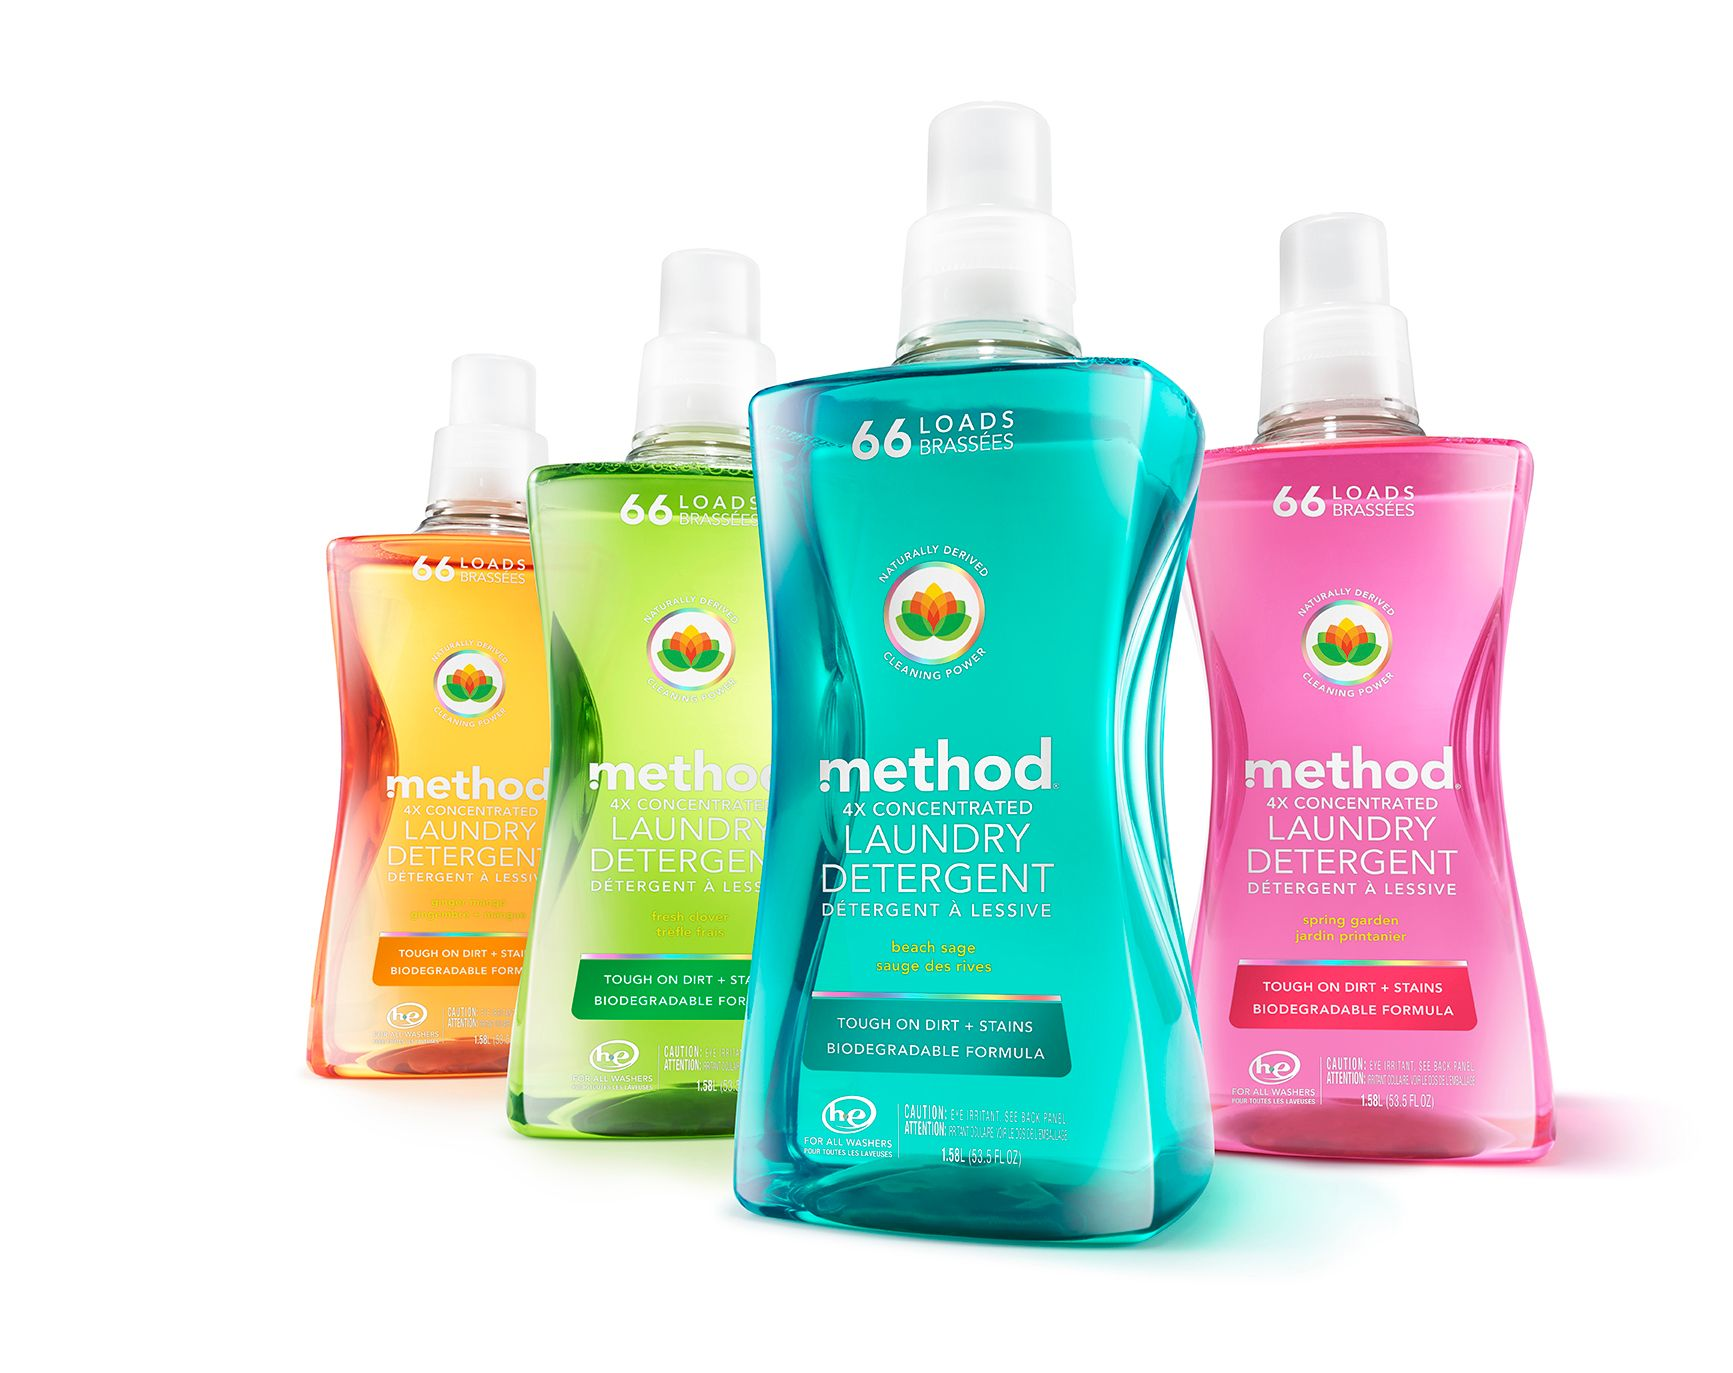 Laundry Detergent Recylced Bottle - 2016 Diamond Finalist Award